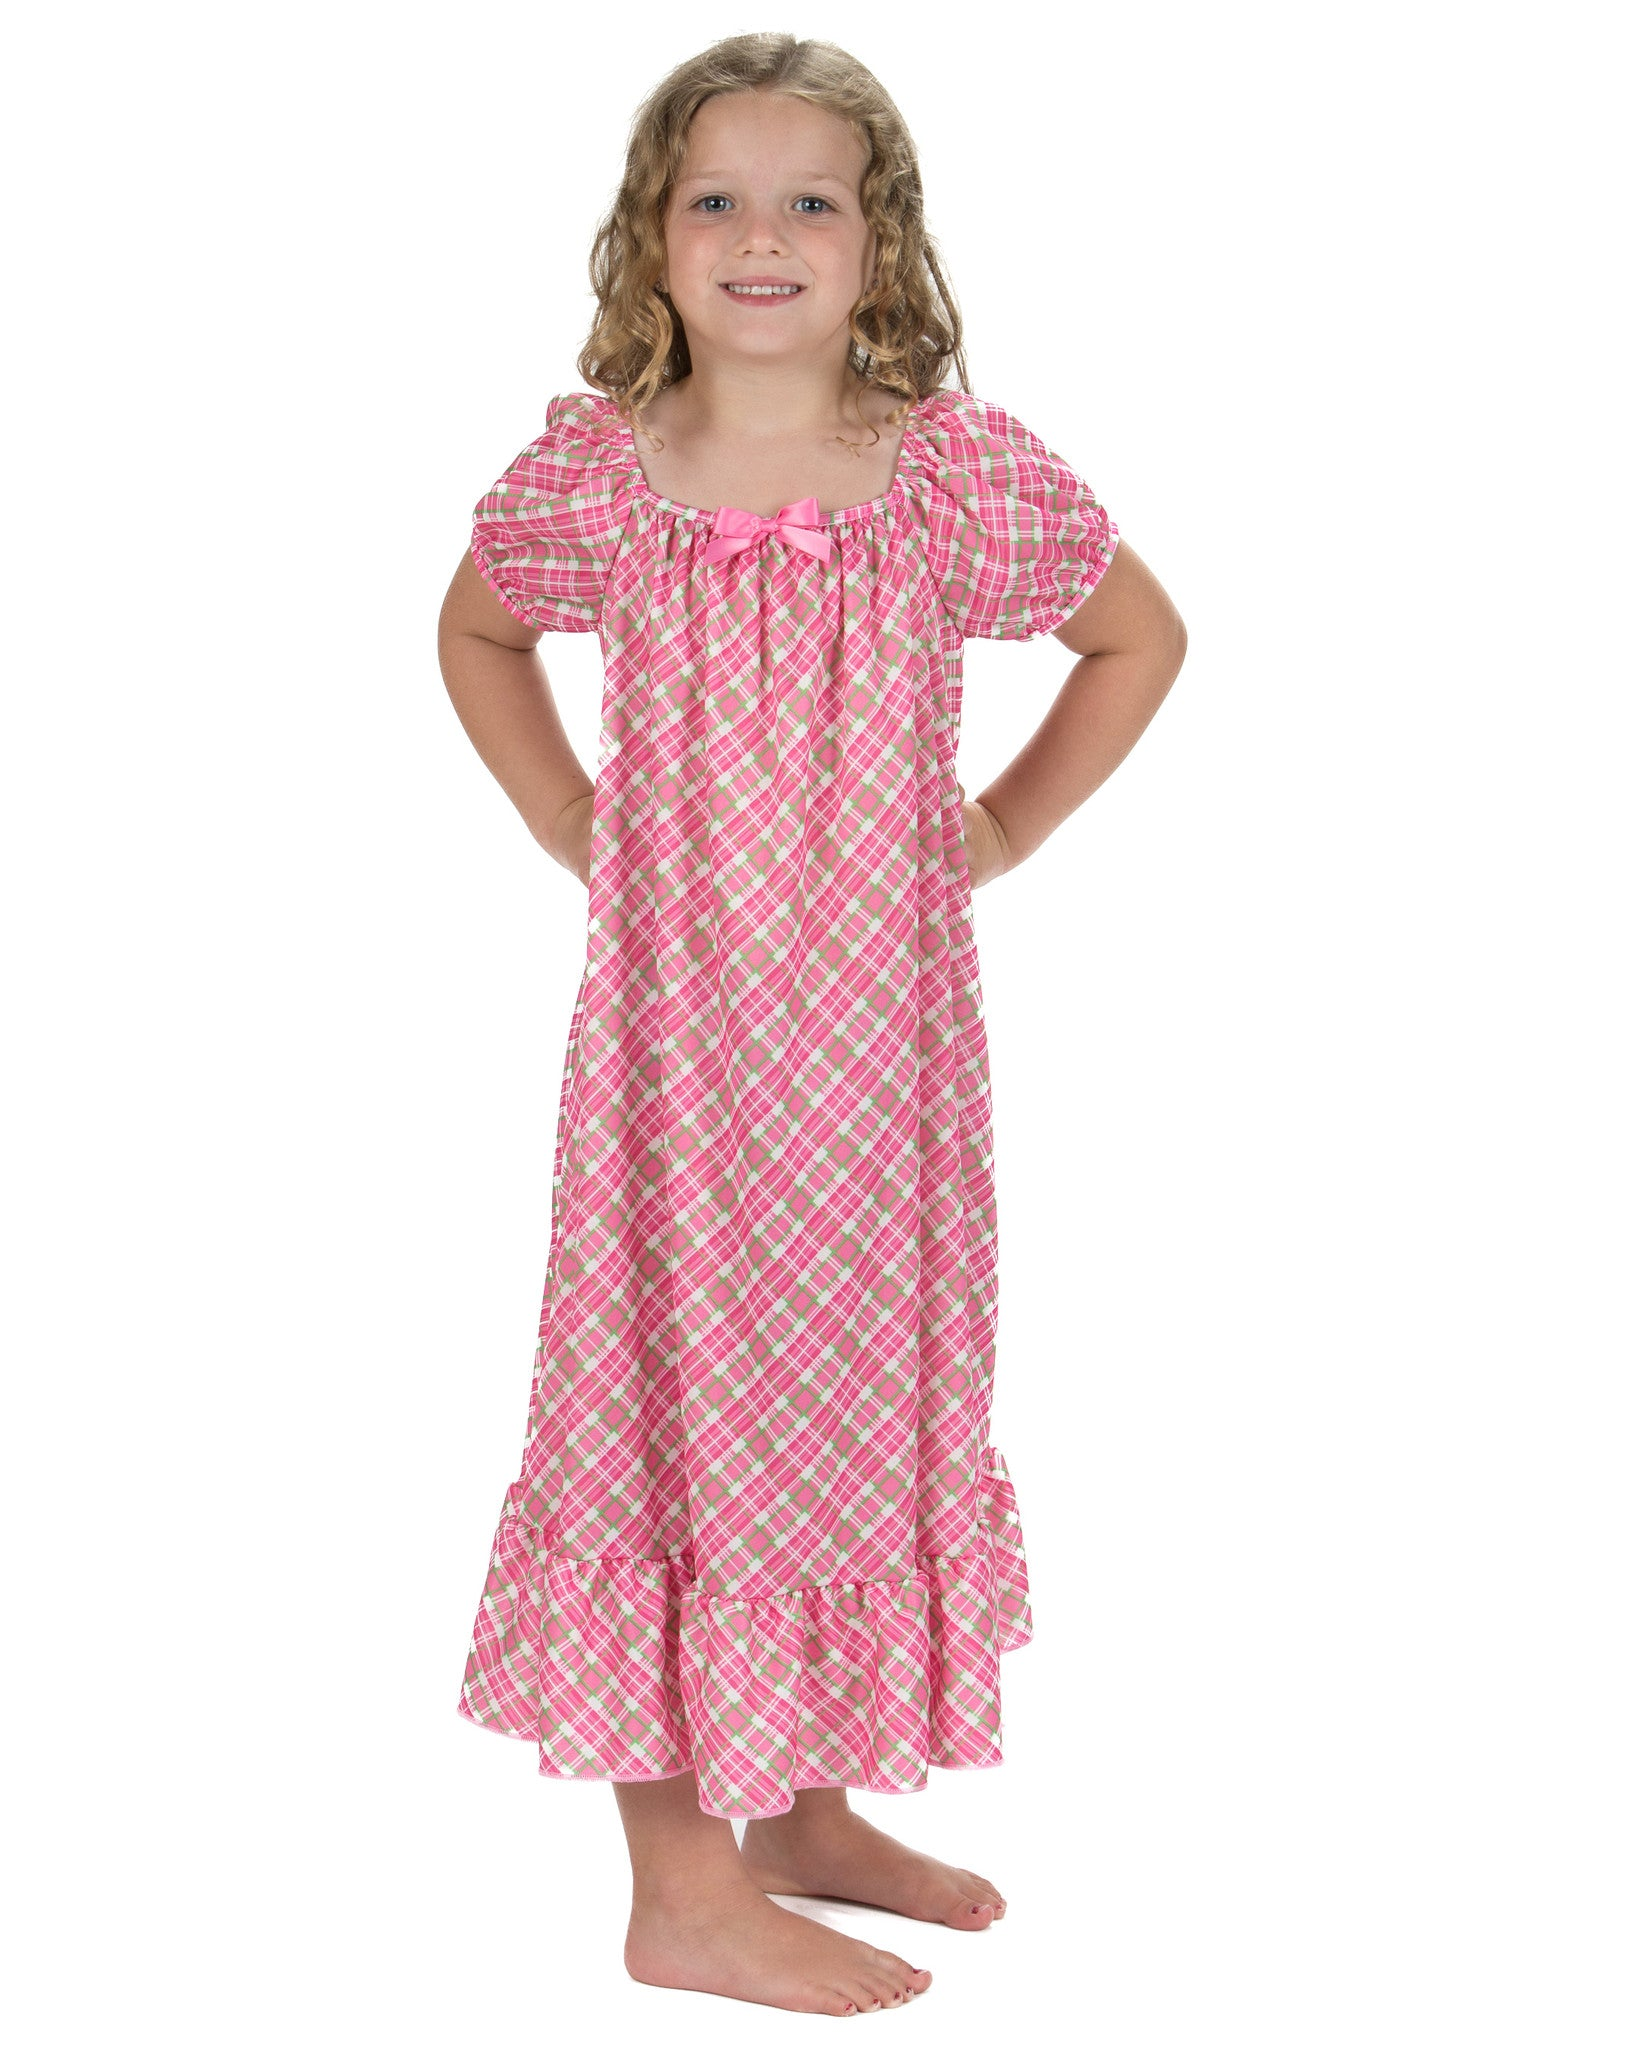 Laura Dare Playful Plaid Puff Sleeve Nightgown